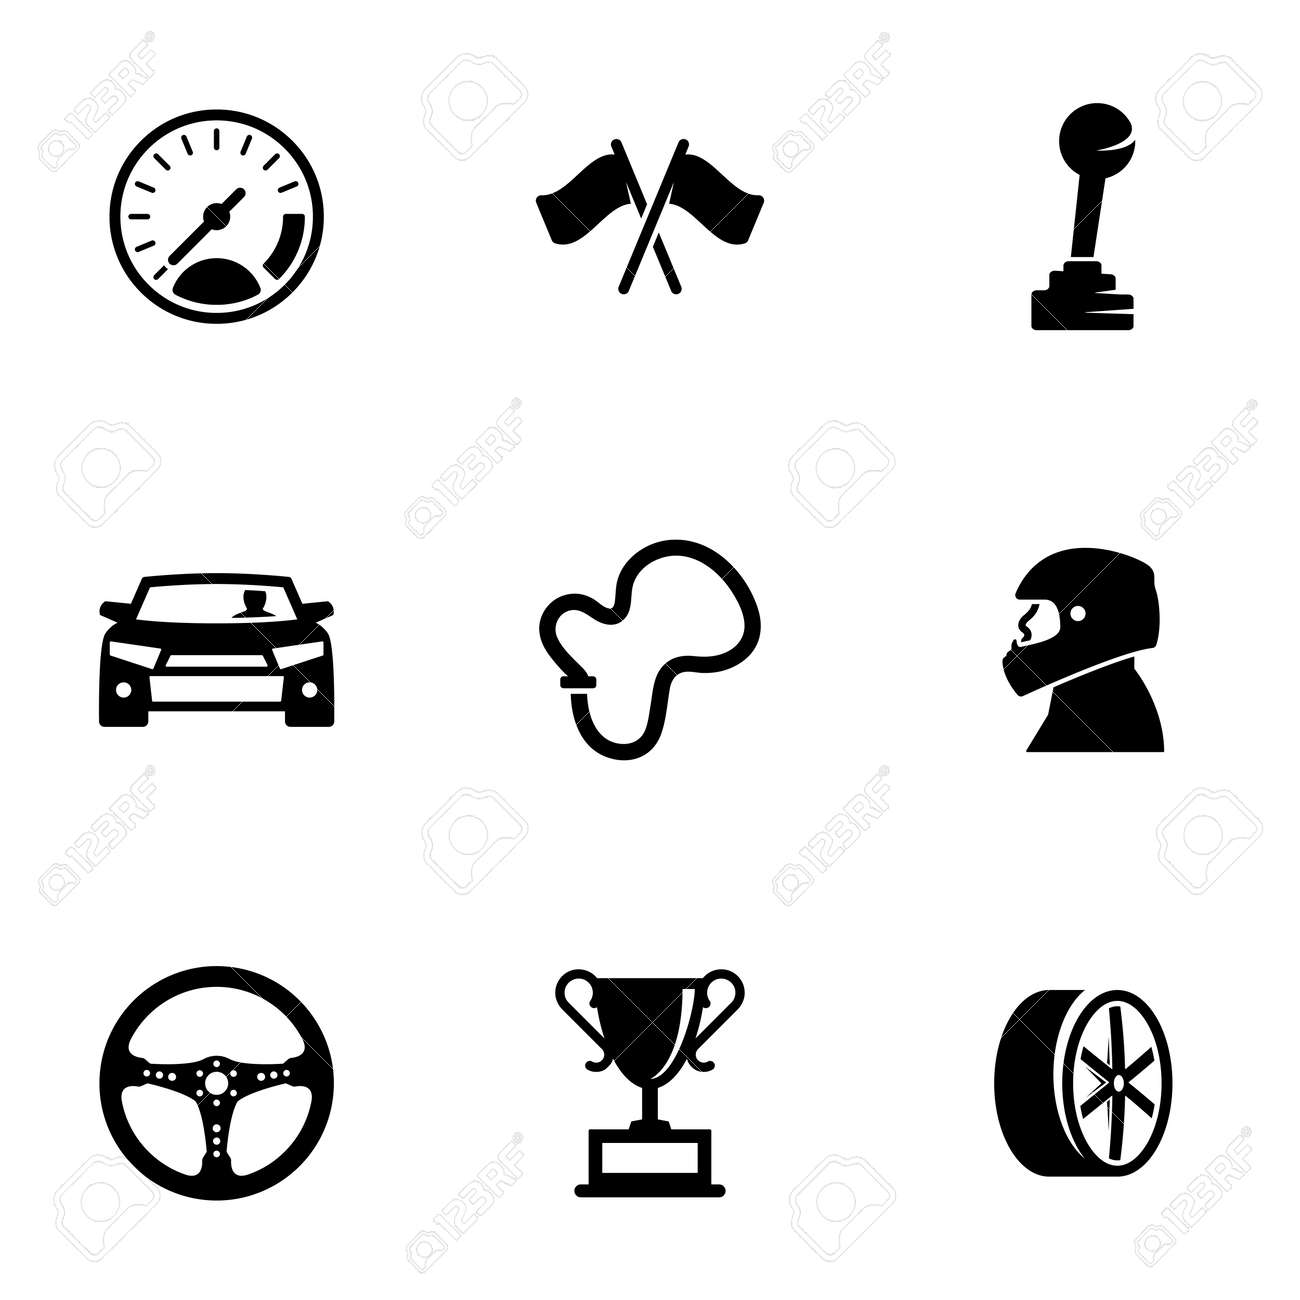 Set of simple icons on a theme Race, vector, design, collection, flat, sign, symbol, element, object, illustration, isolated. White background - 159106438